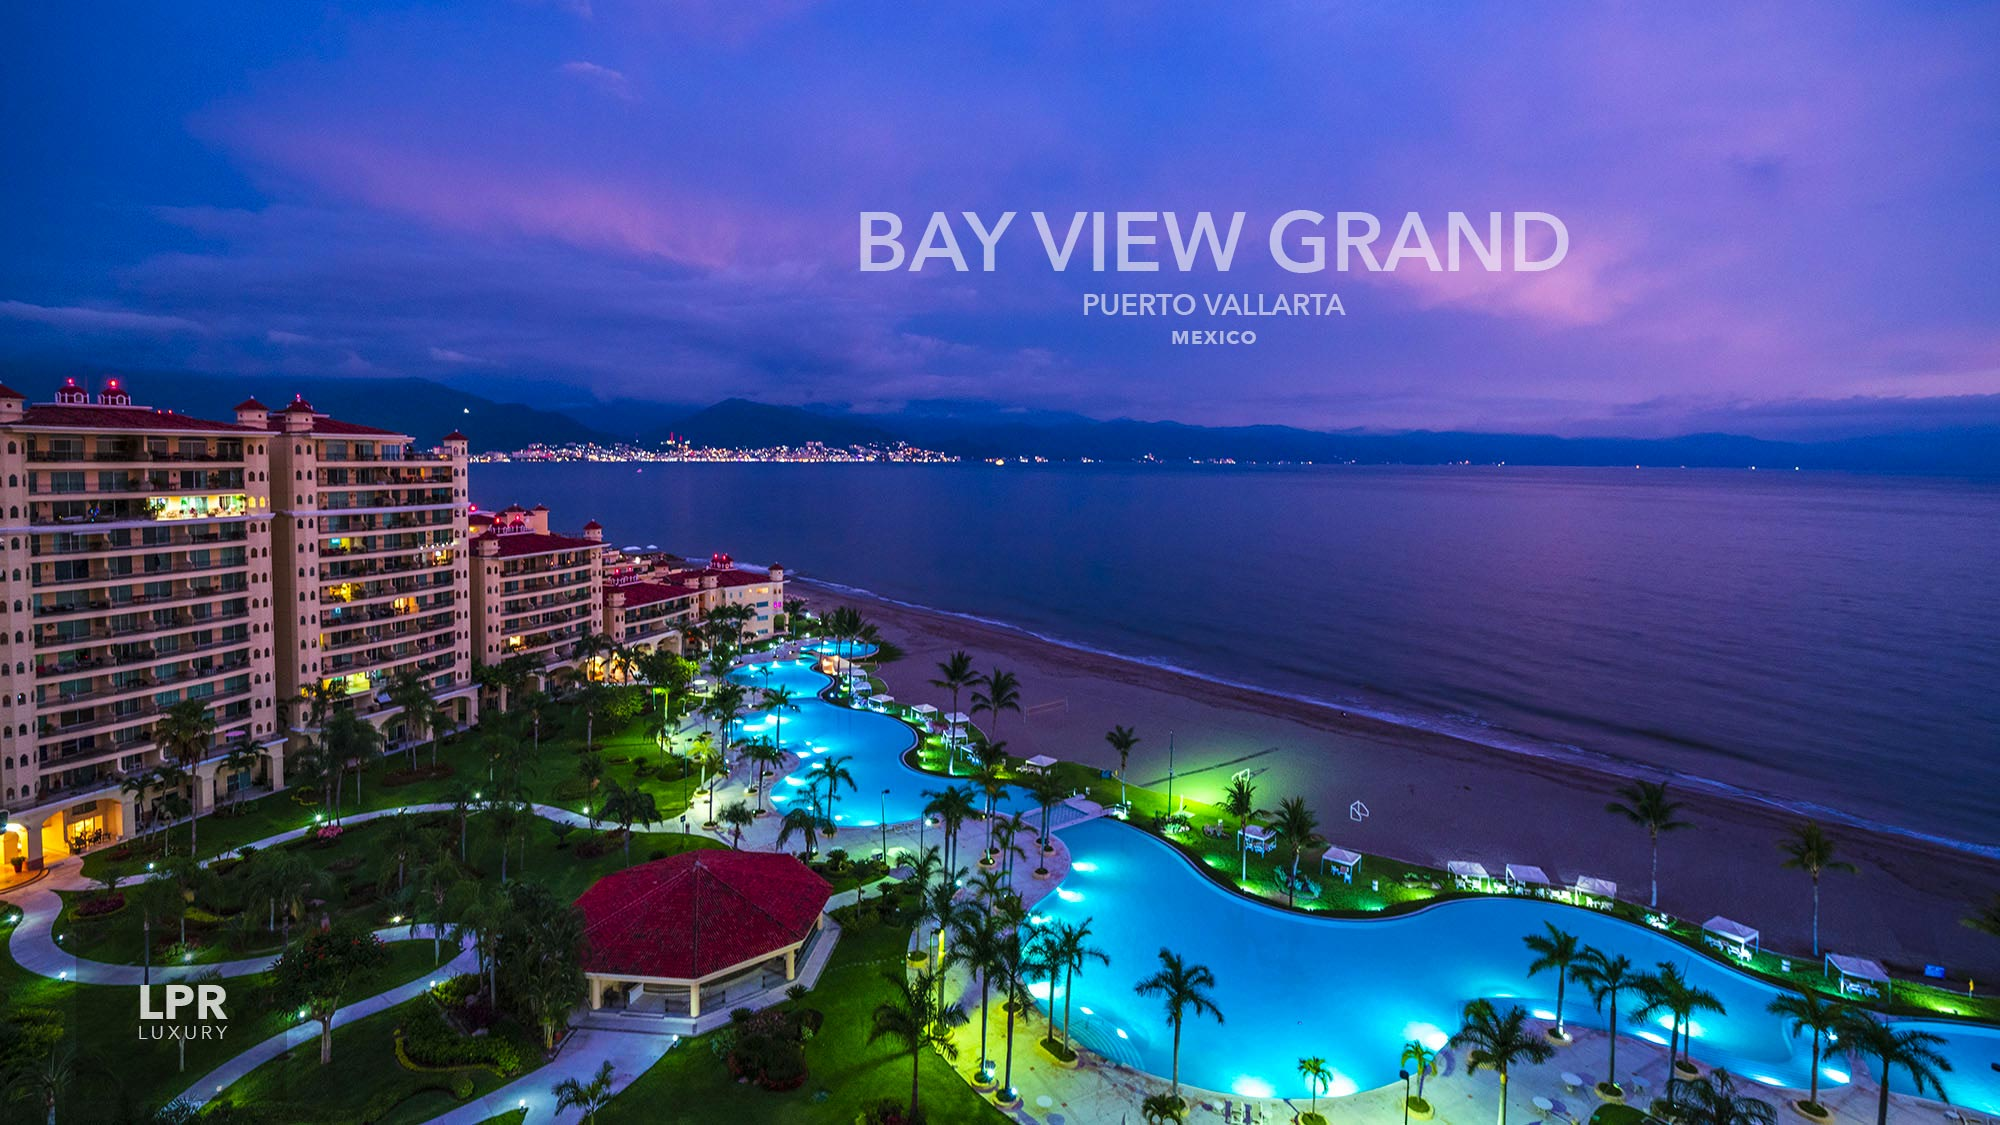 Bay View Grand - Puerto Vallarta, Mexico - Htel Zone condominiums for sale and rent - Jalisco, Mexico